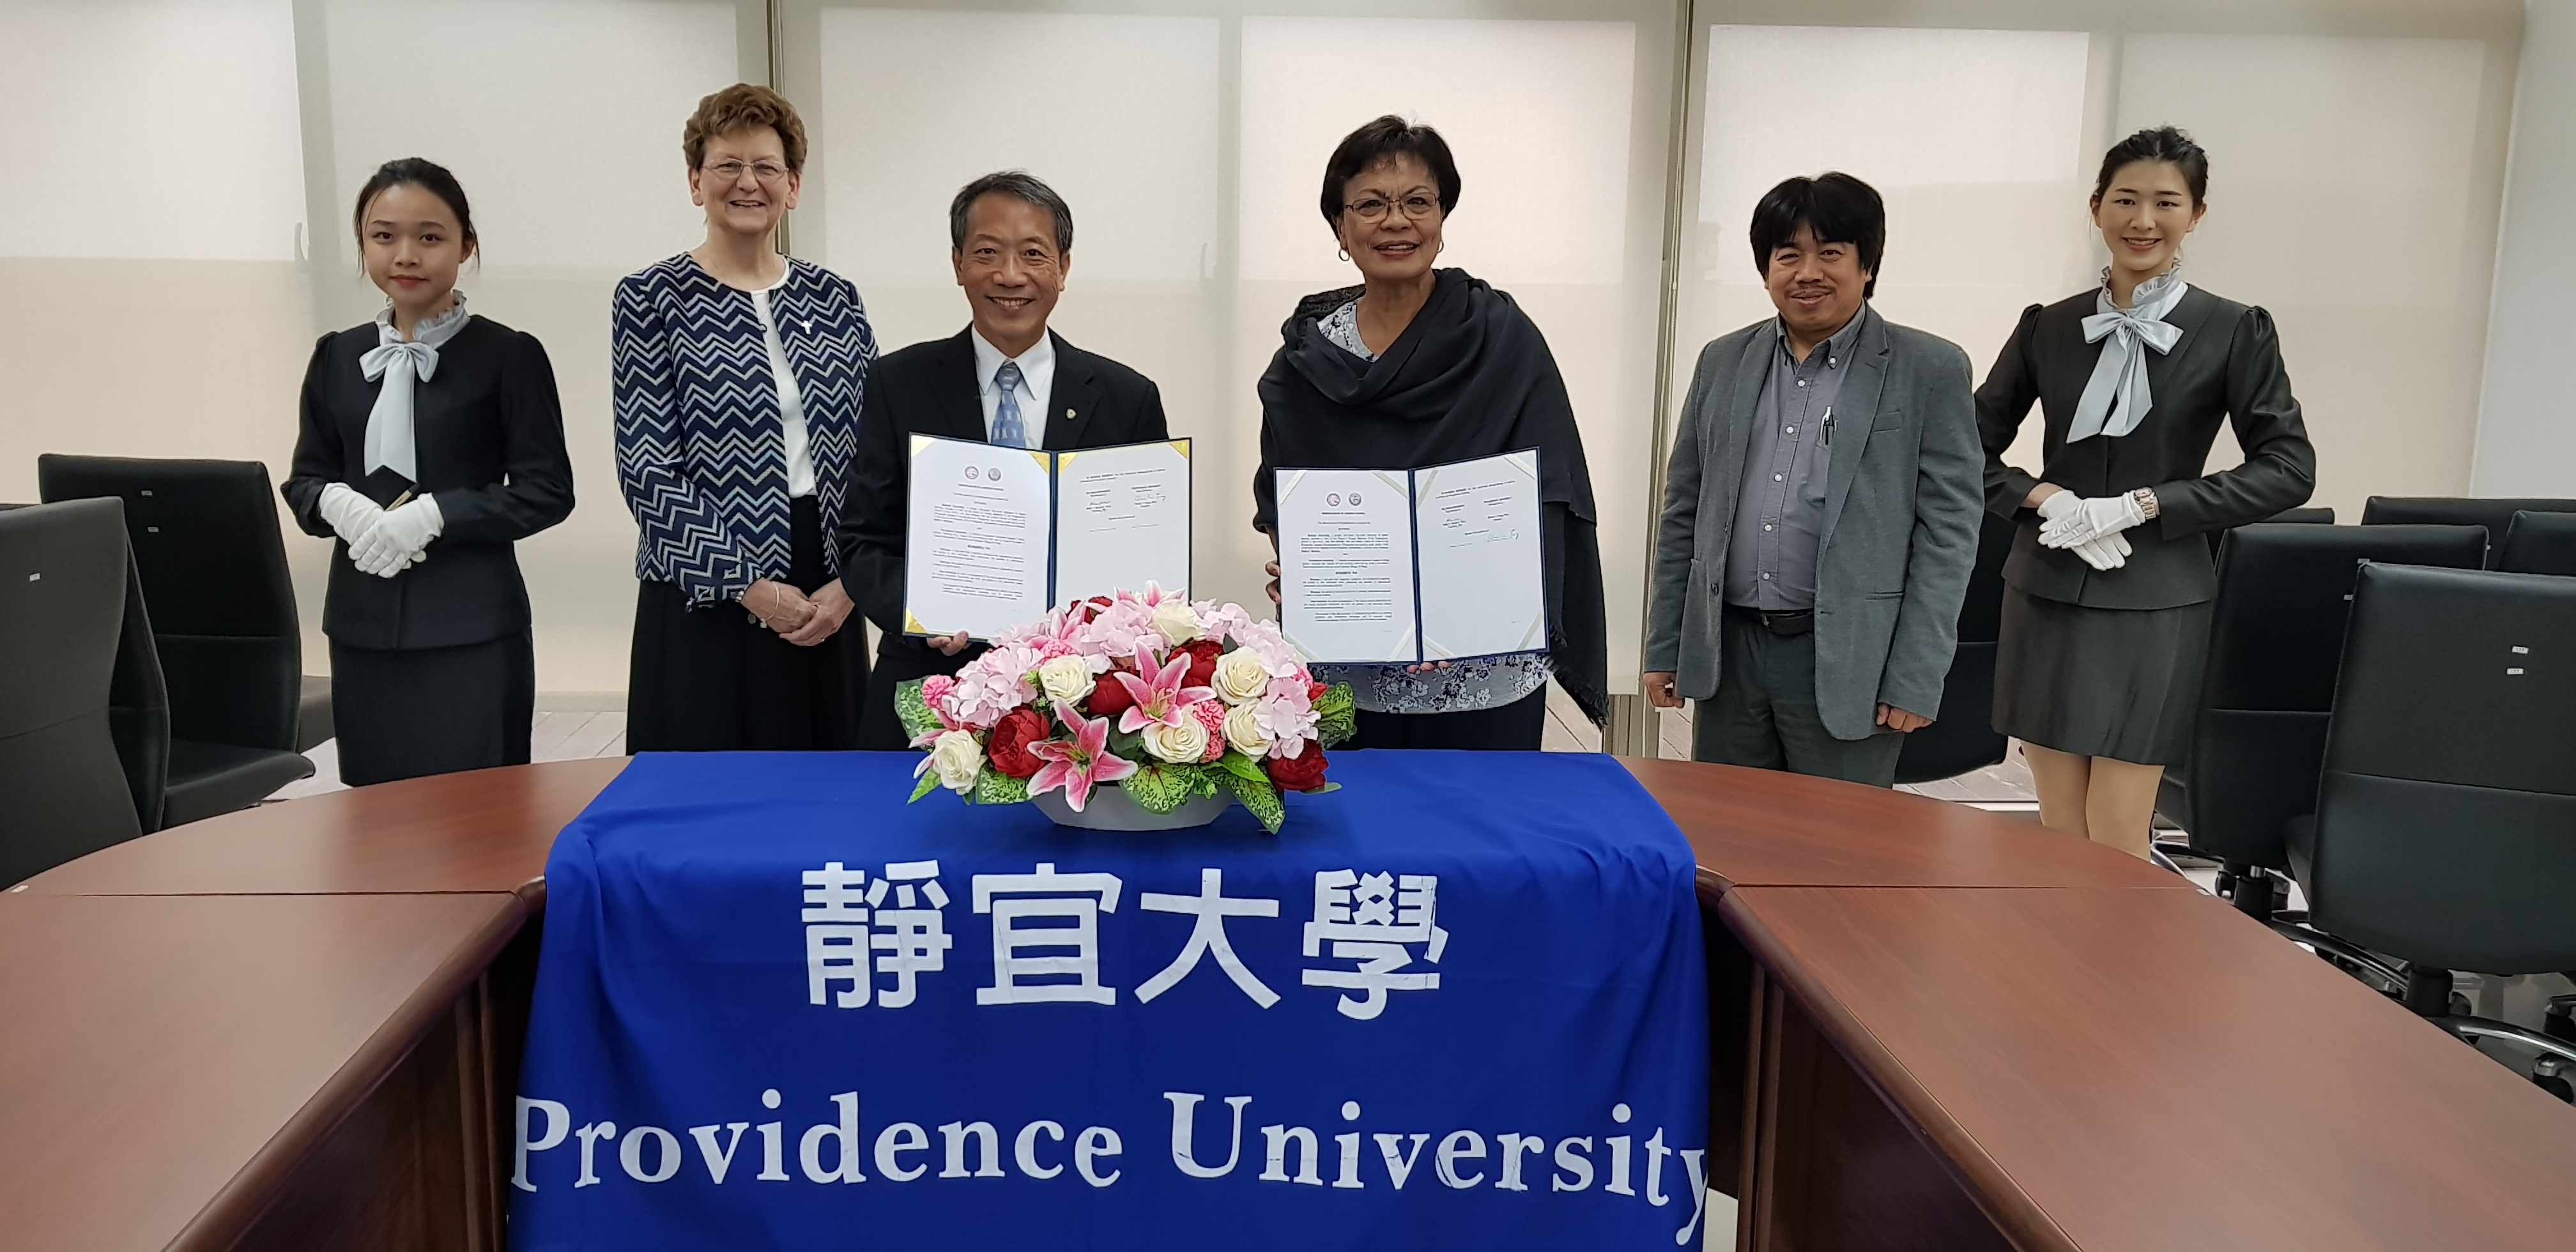 MoU signing with Taiwan-based Providence University